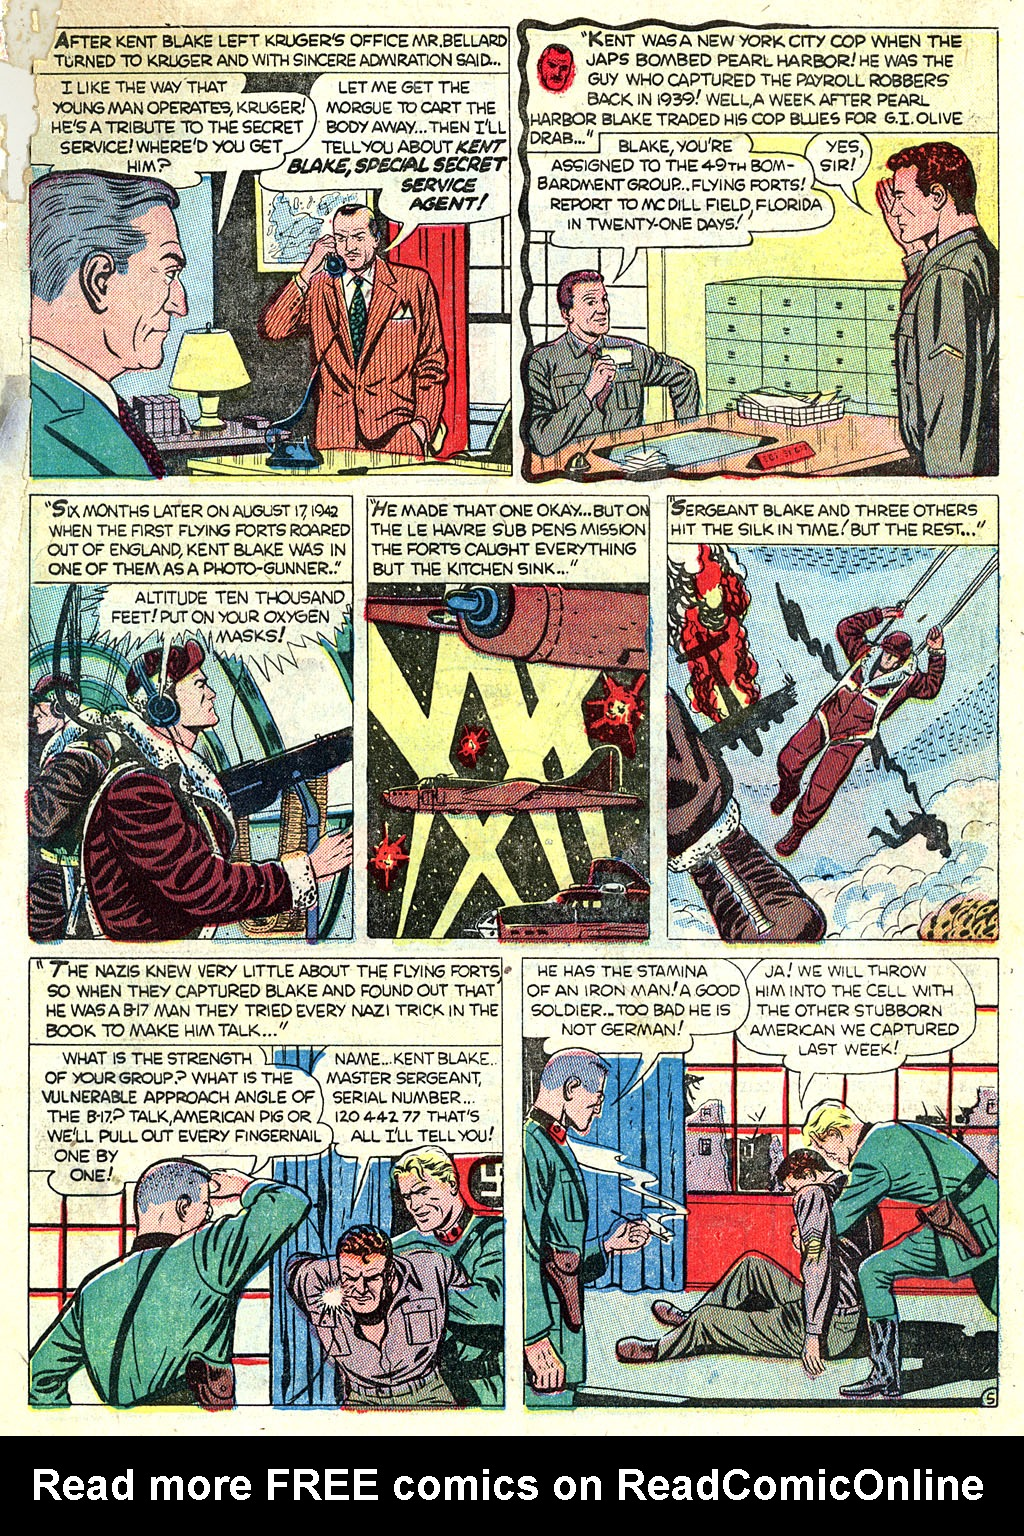 Kent Blake of the Secret Service issue 1 - Page 7